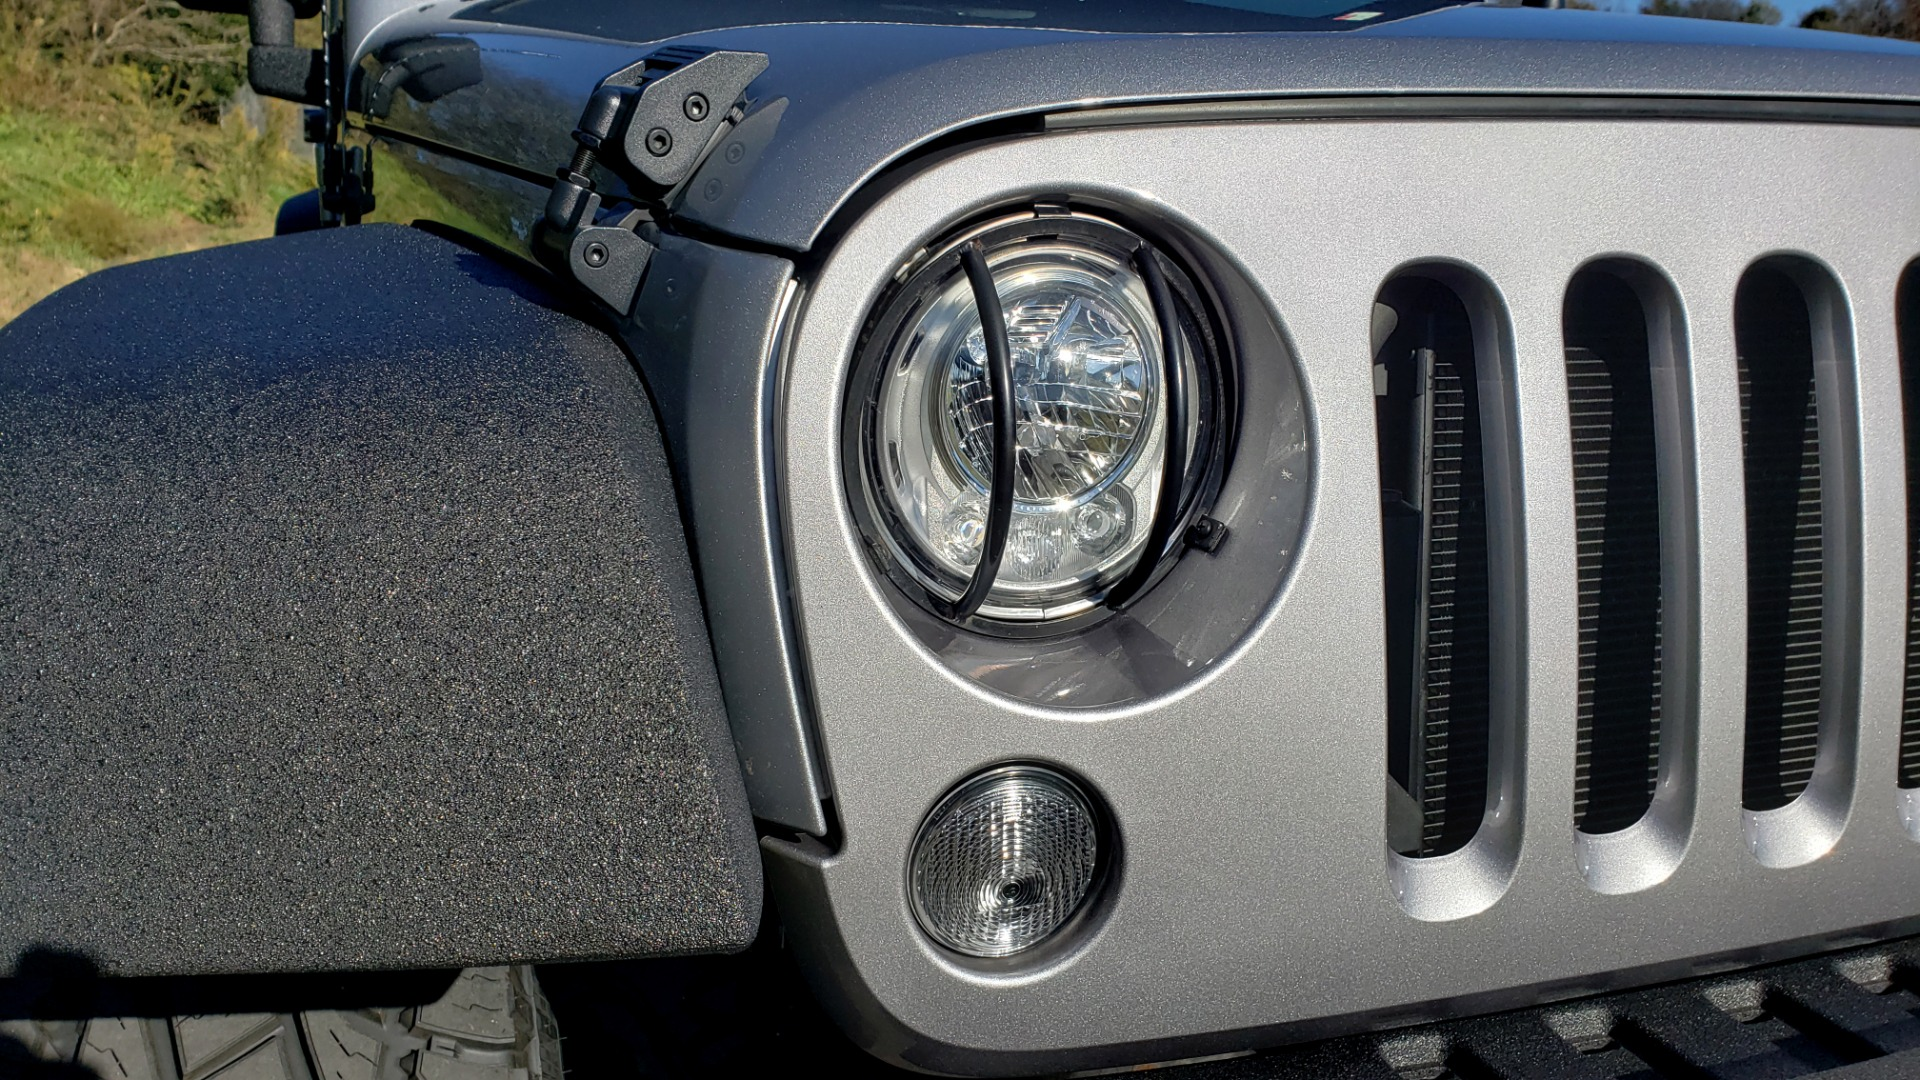 Used 2017 Jeep WRANGLER SPORT 4X4 / 3.6L V6 / MANUAL / AIR / LED LIGHTING / TOW GRP / AL for sale $31,900 at Formula Imports in Charlotte NC 28227 13